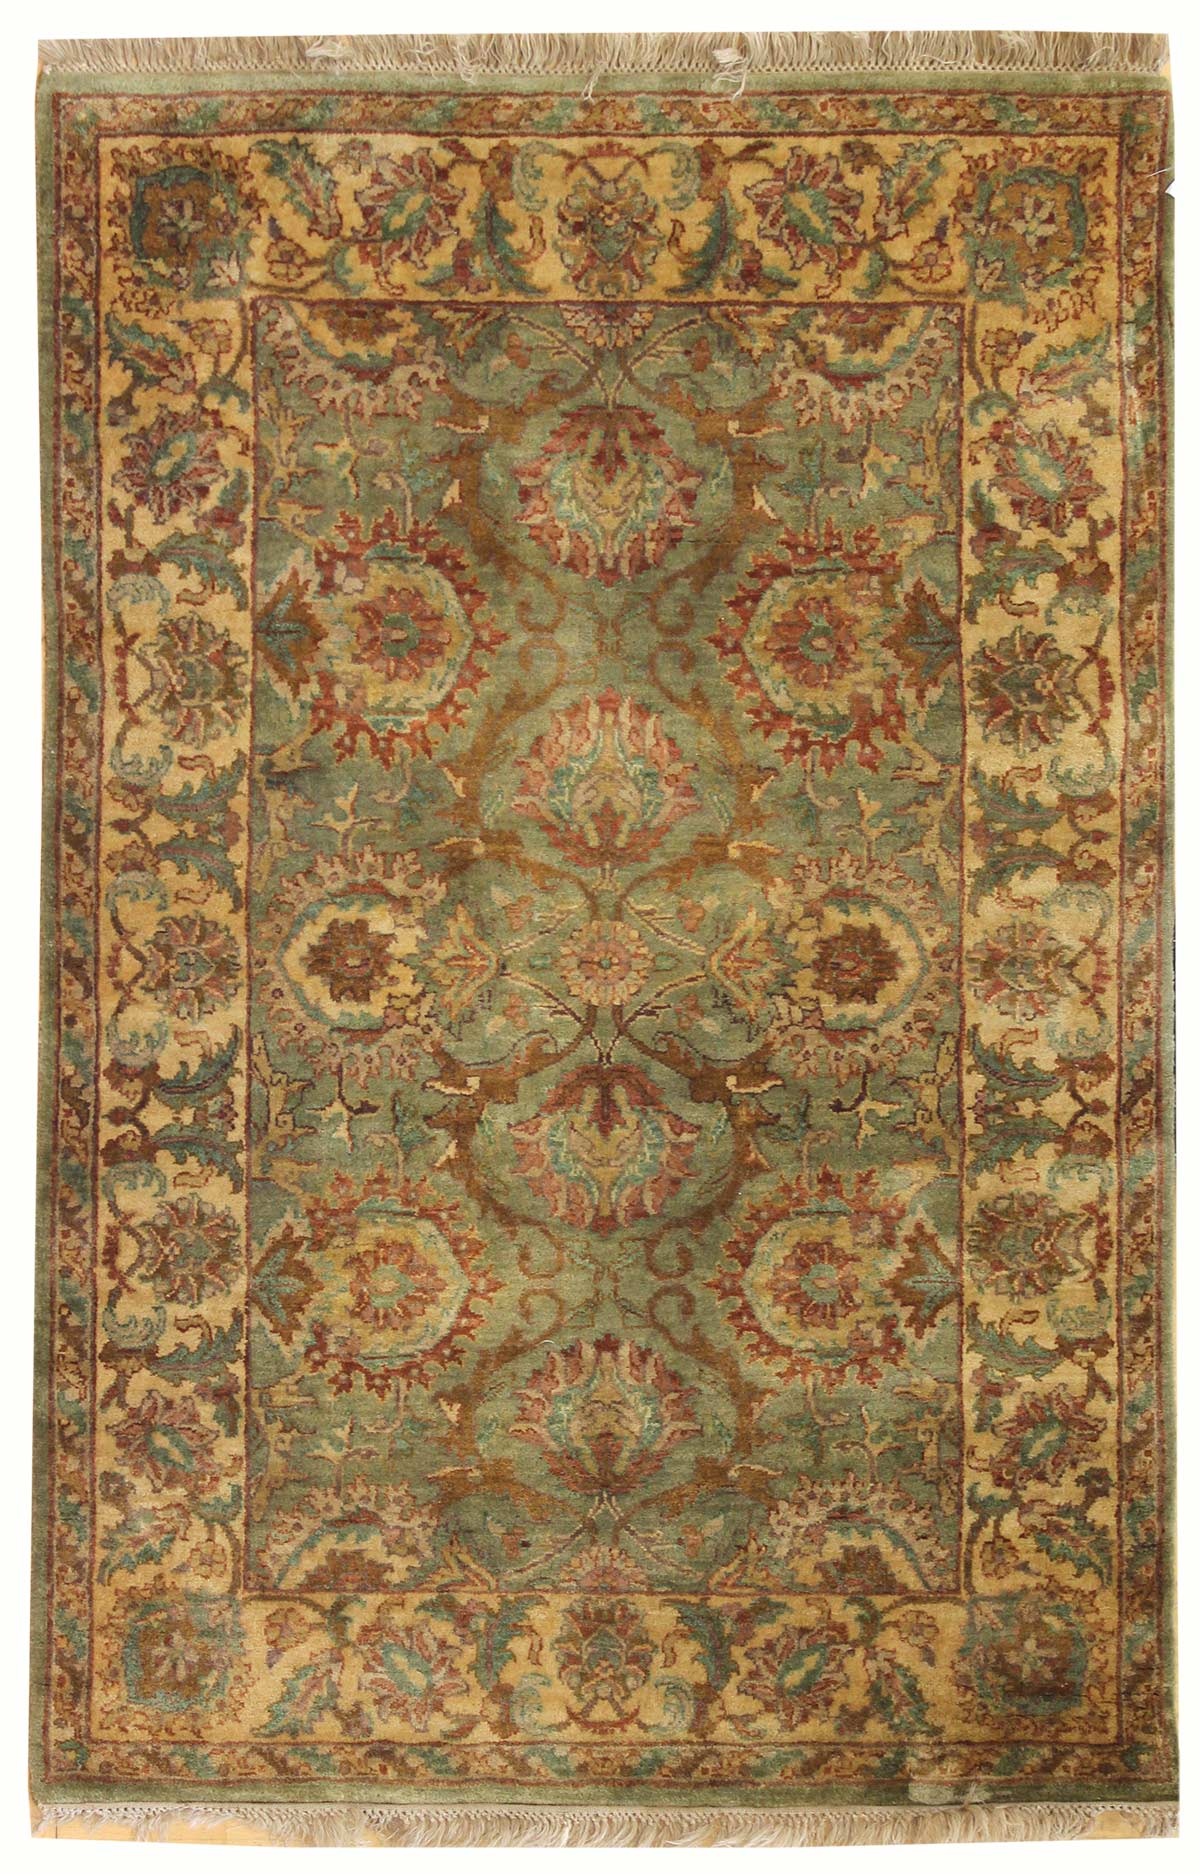 Agra Handwoven Traditional Rug